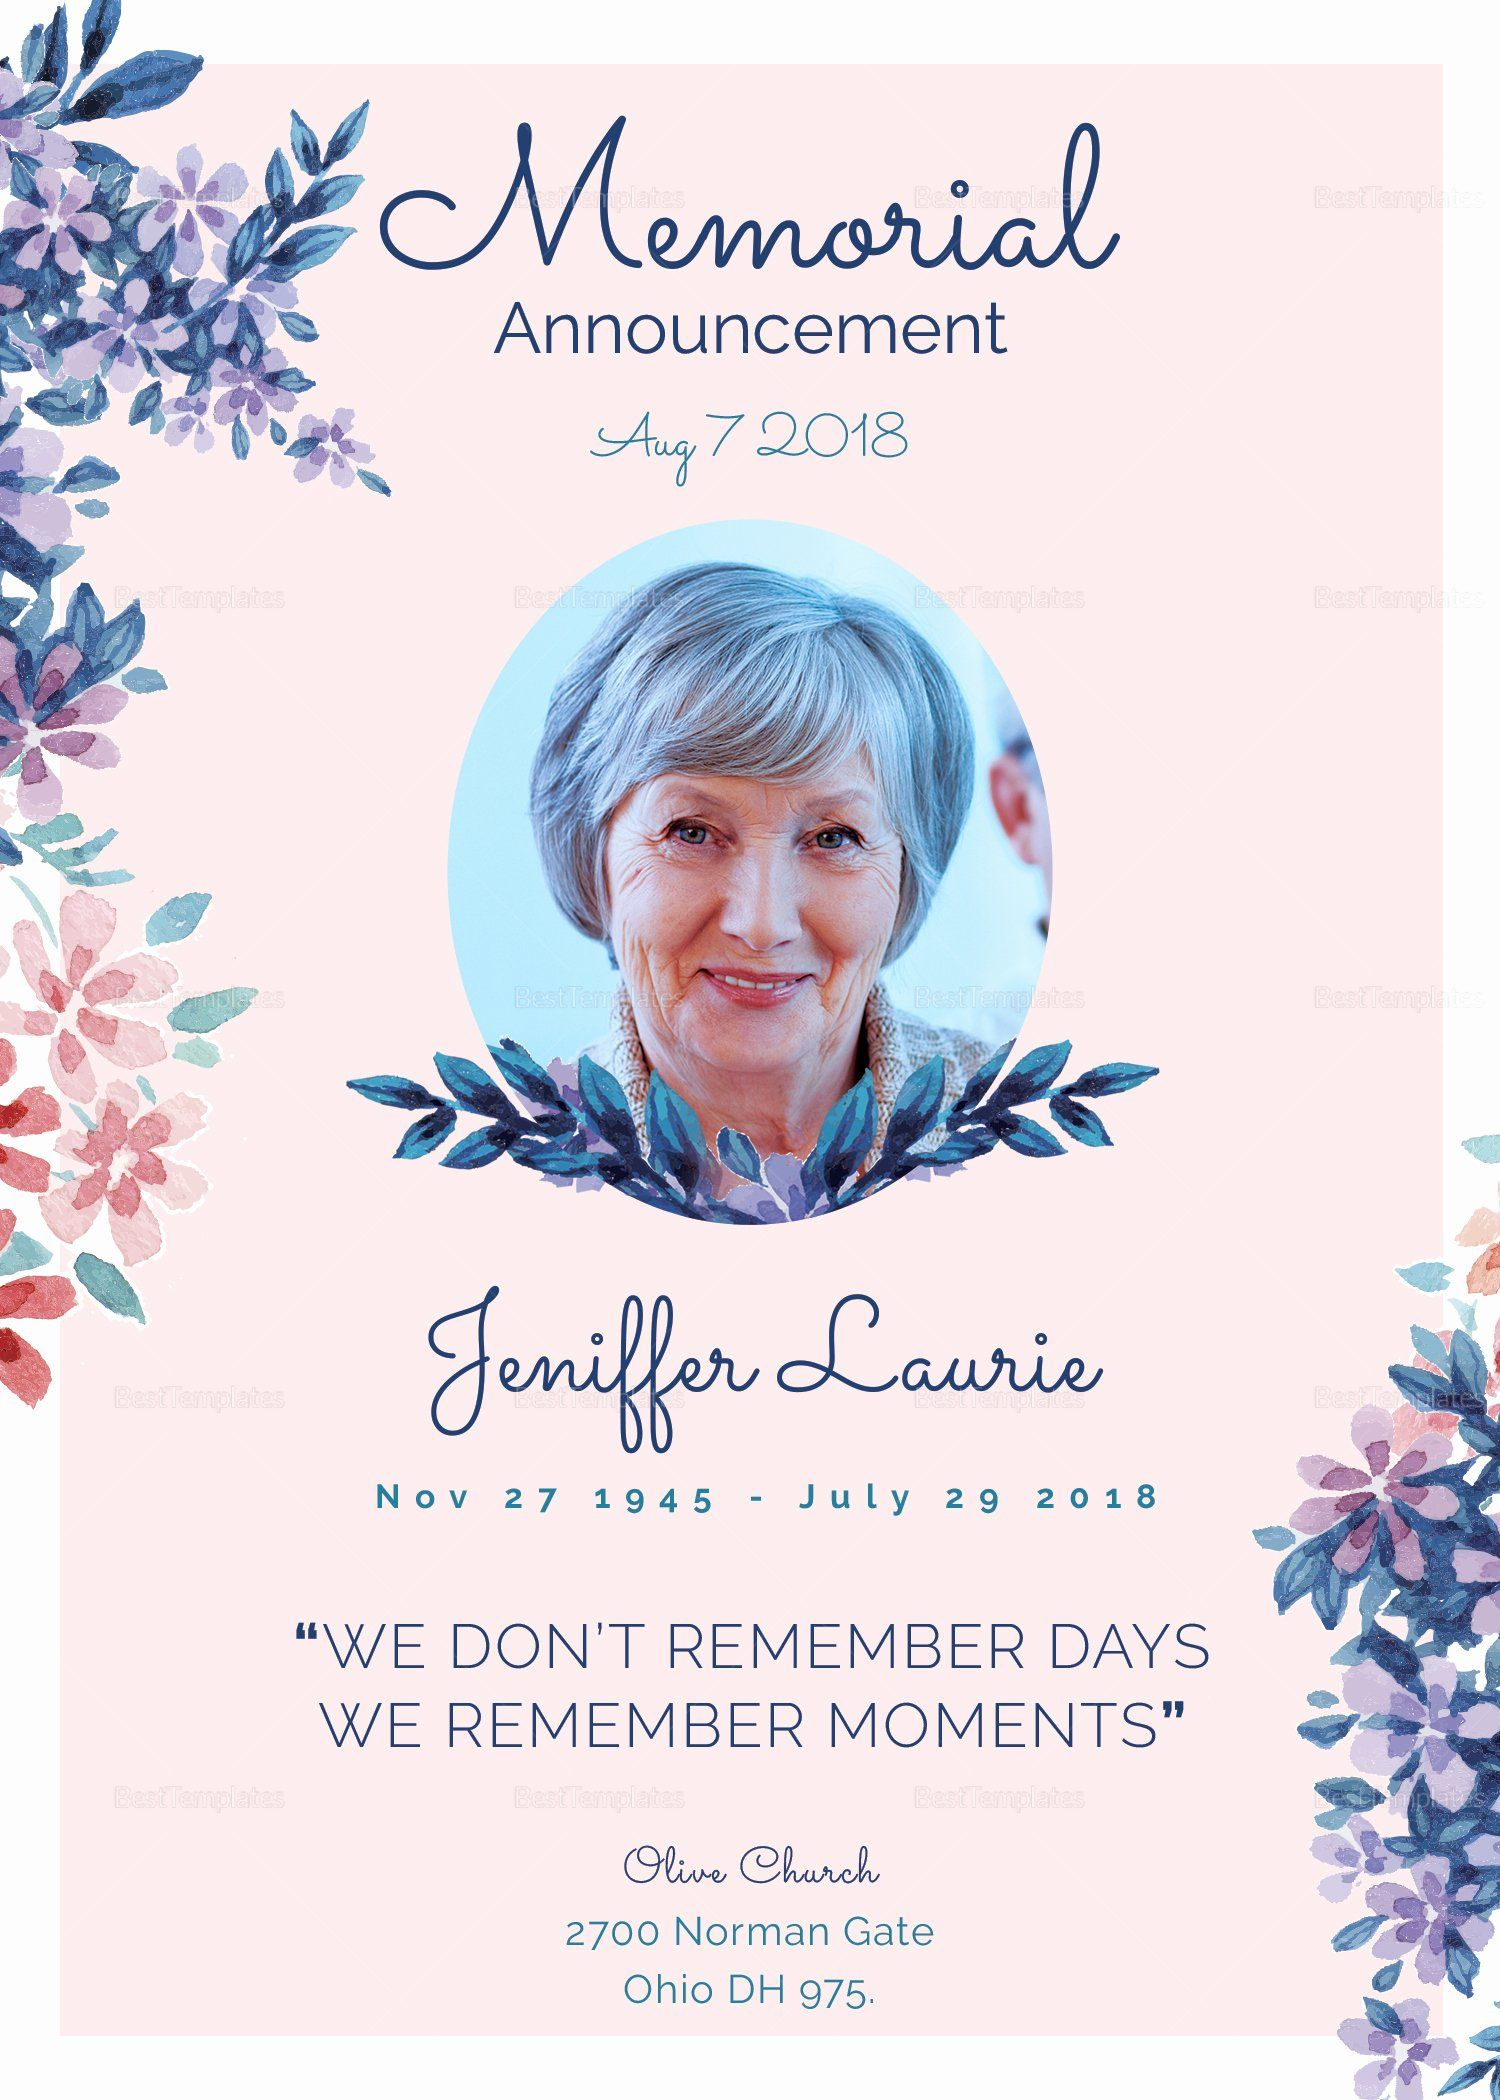 Funeral Invitation Template Free Best Of Vintage Funeral Invitation Design Template In Wor Funeral Invitation Funeral Templates Free Memorial Cards For Funeral